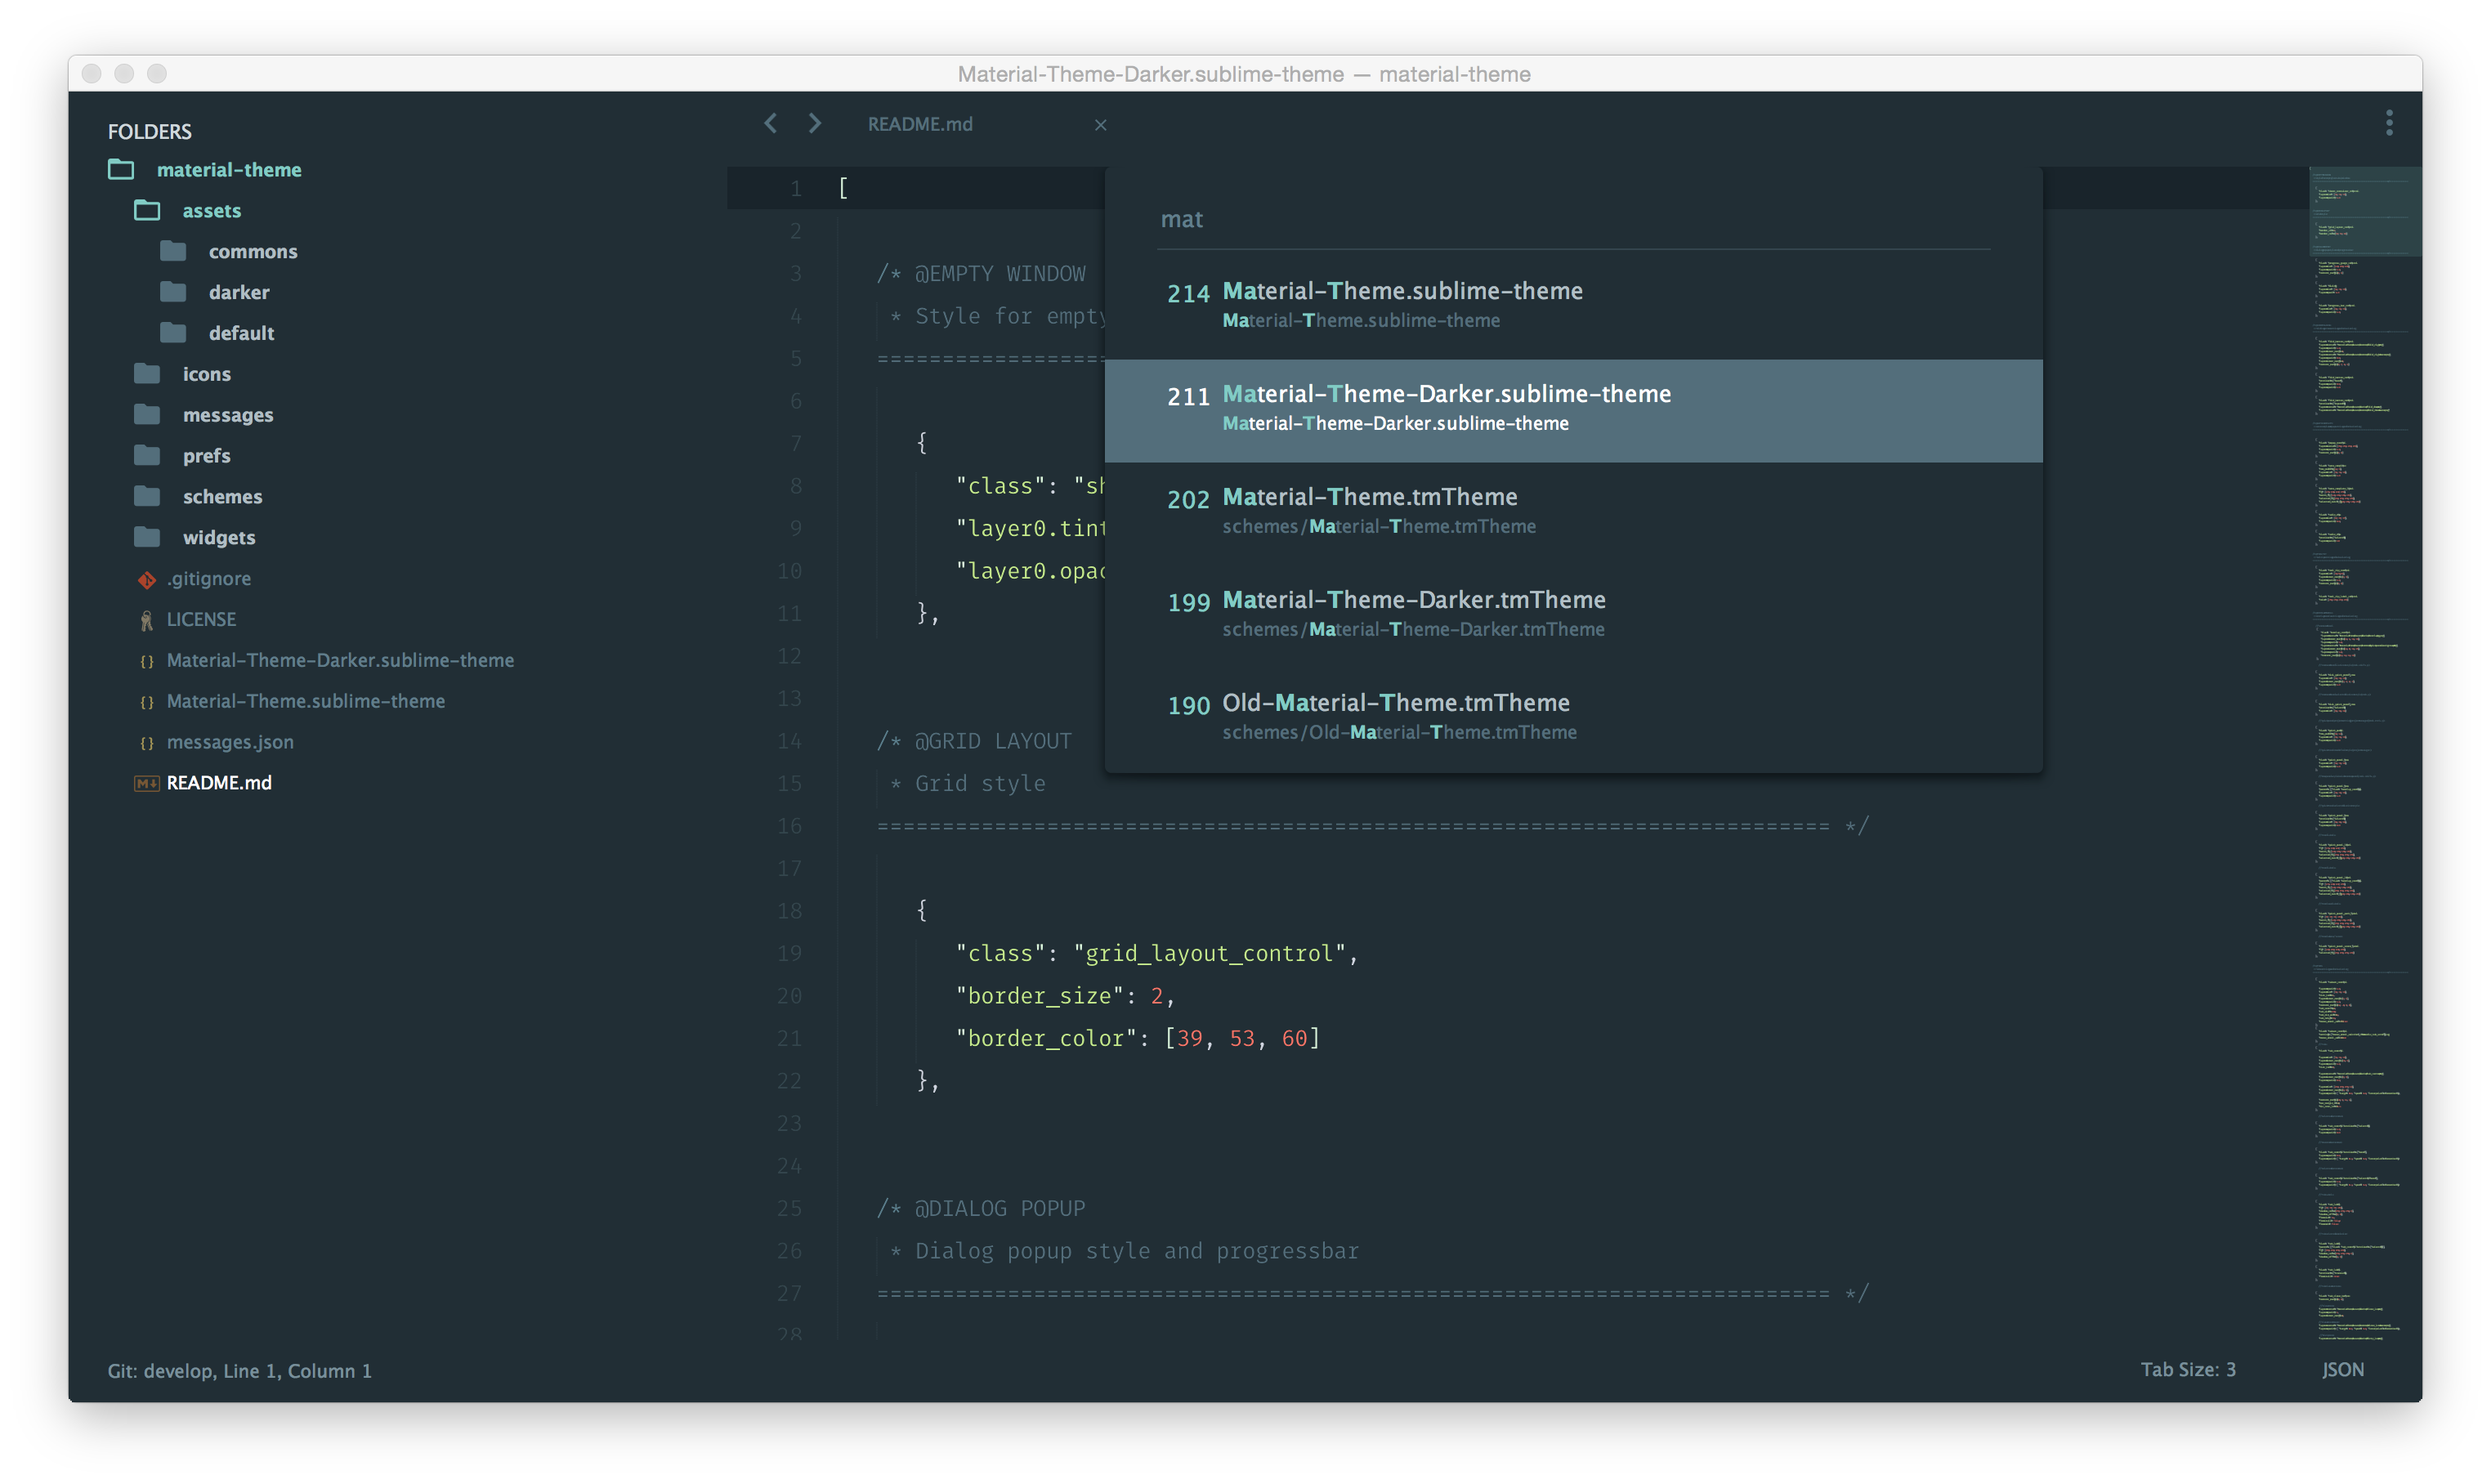 Material Theme Image